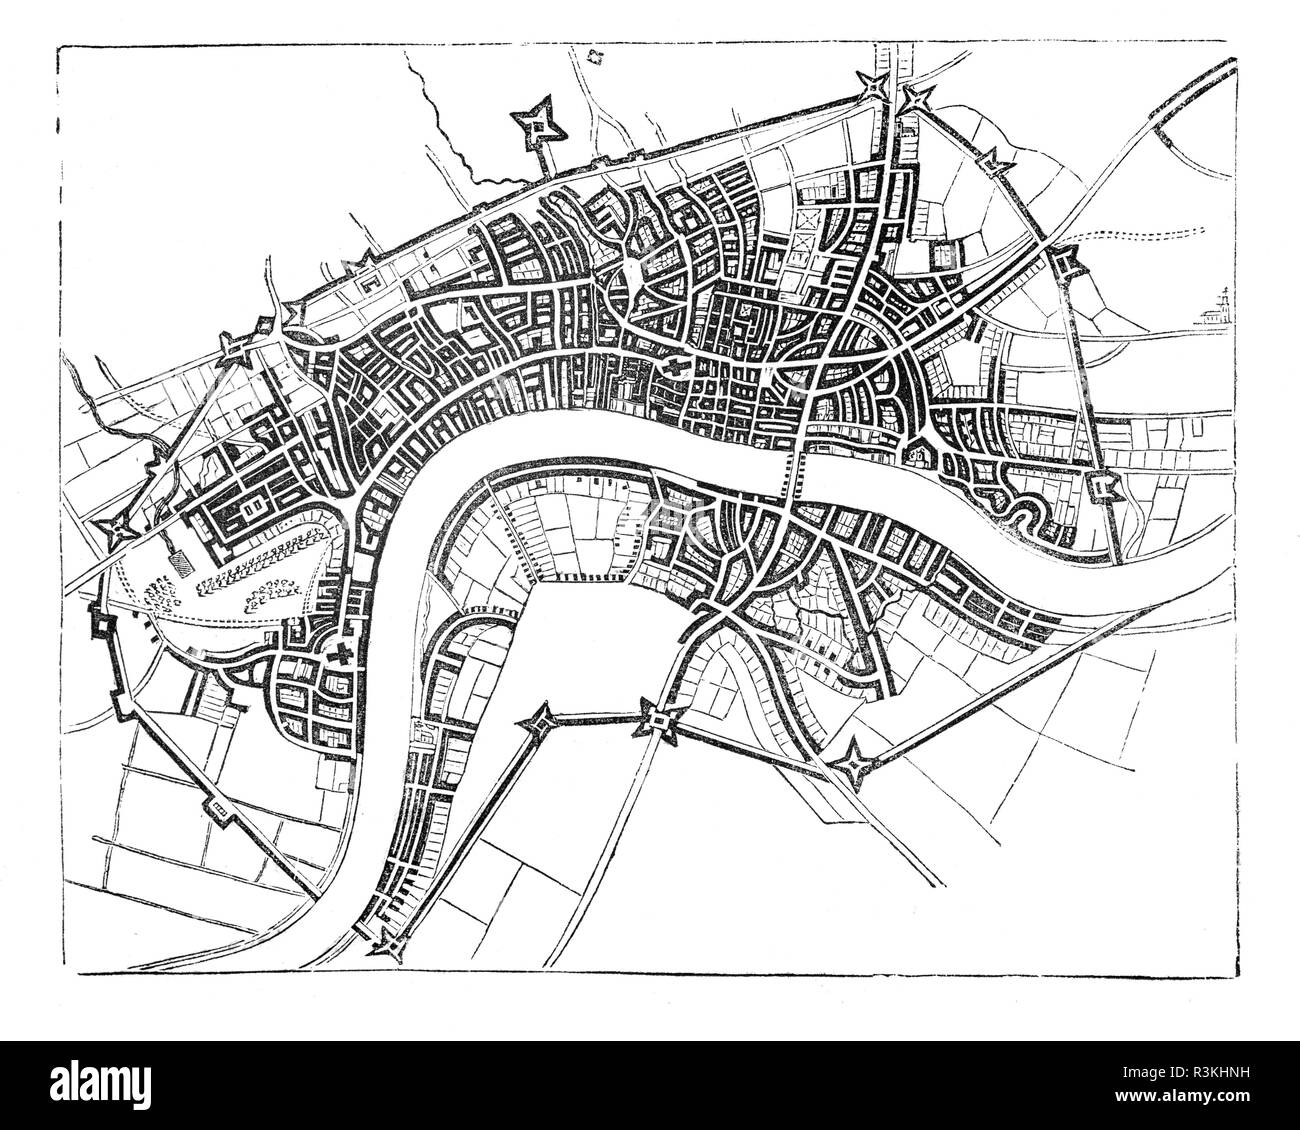 A map of mid-17th Century London showing the walls that surrounded the then small City, England. - Stock Image